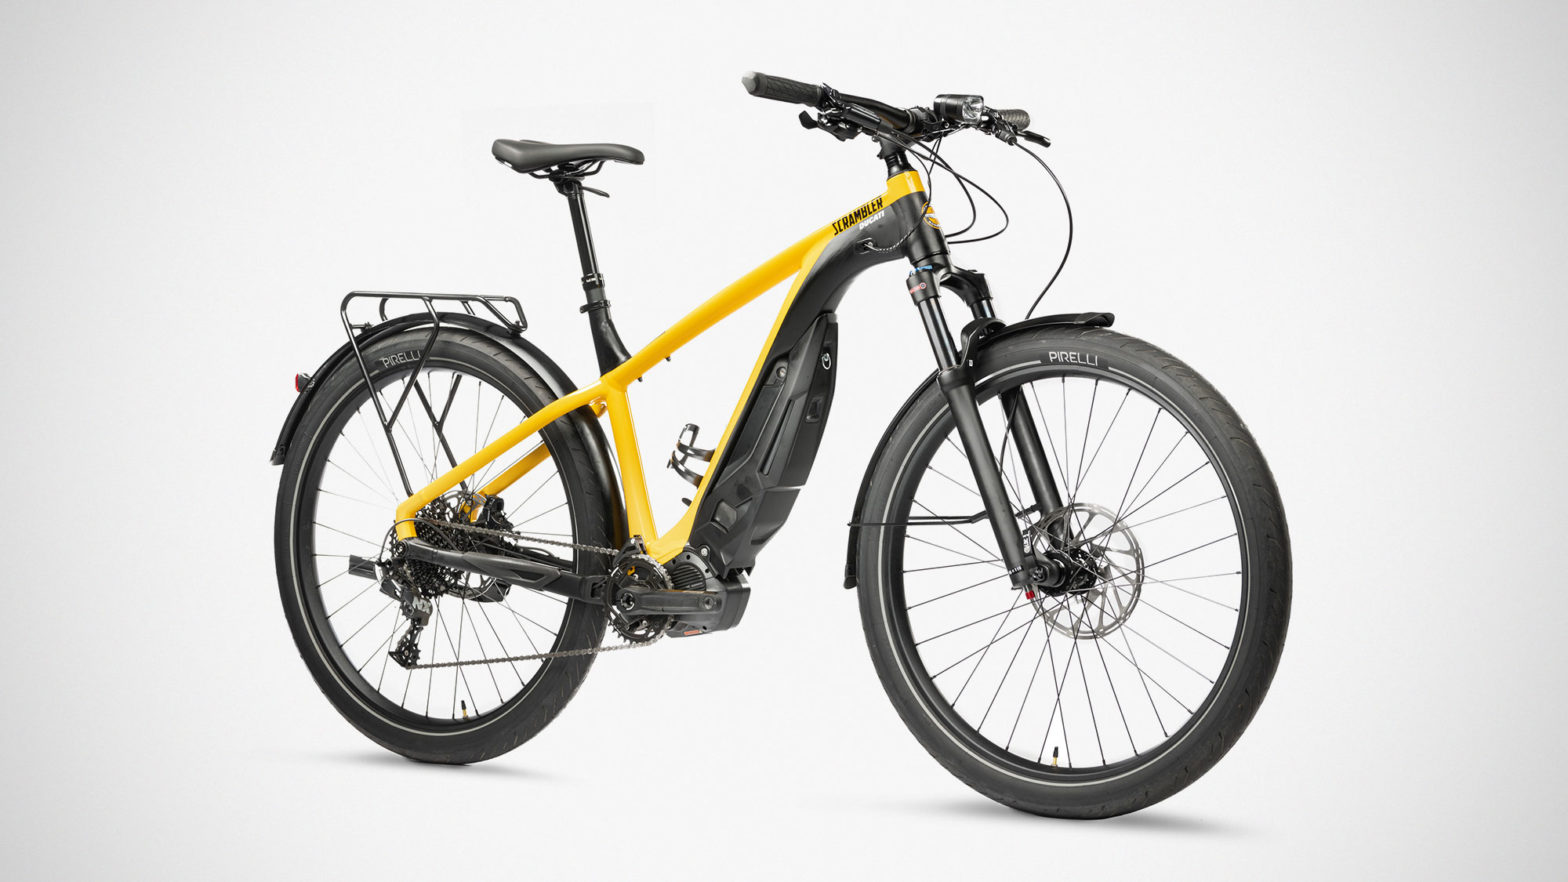 New Ducati Electric Bicycles